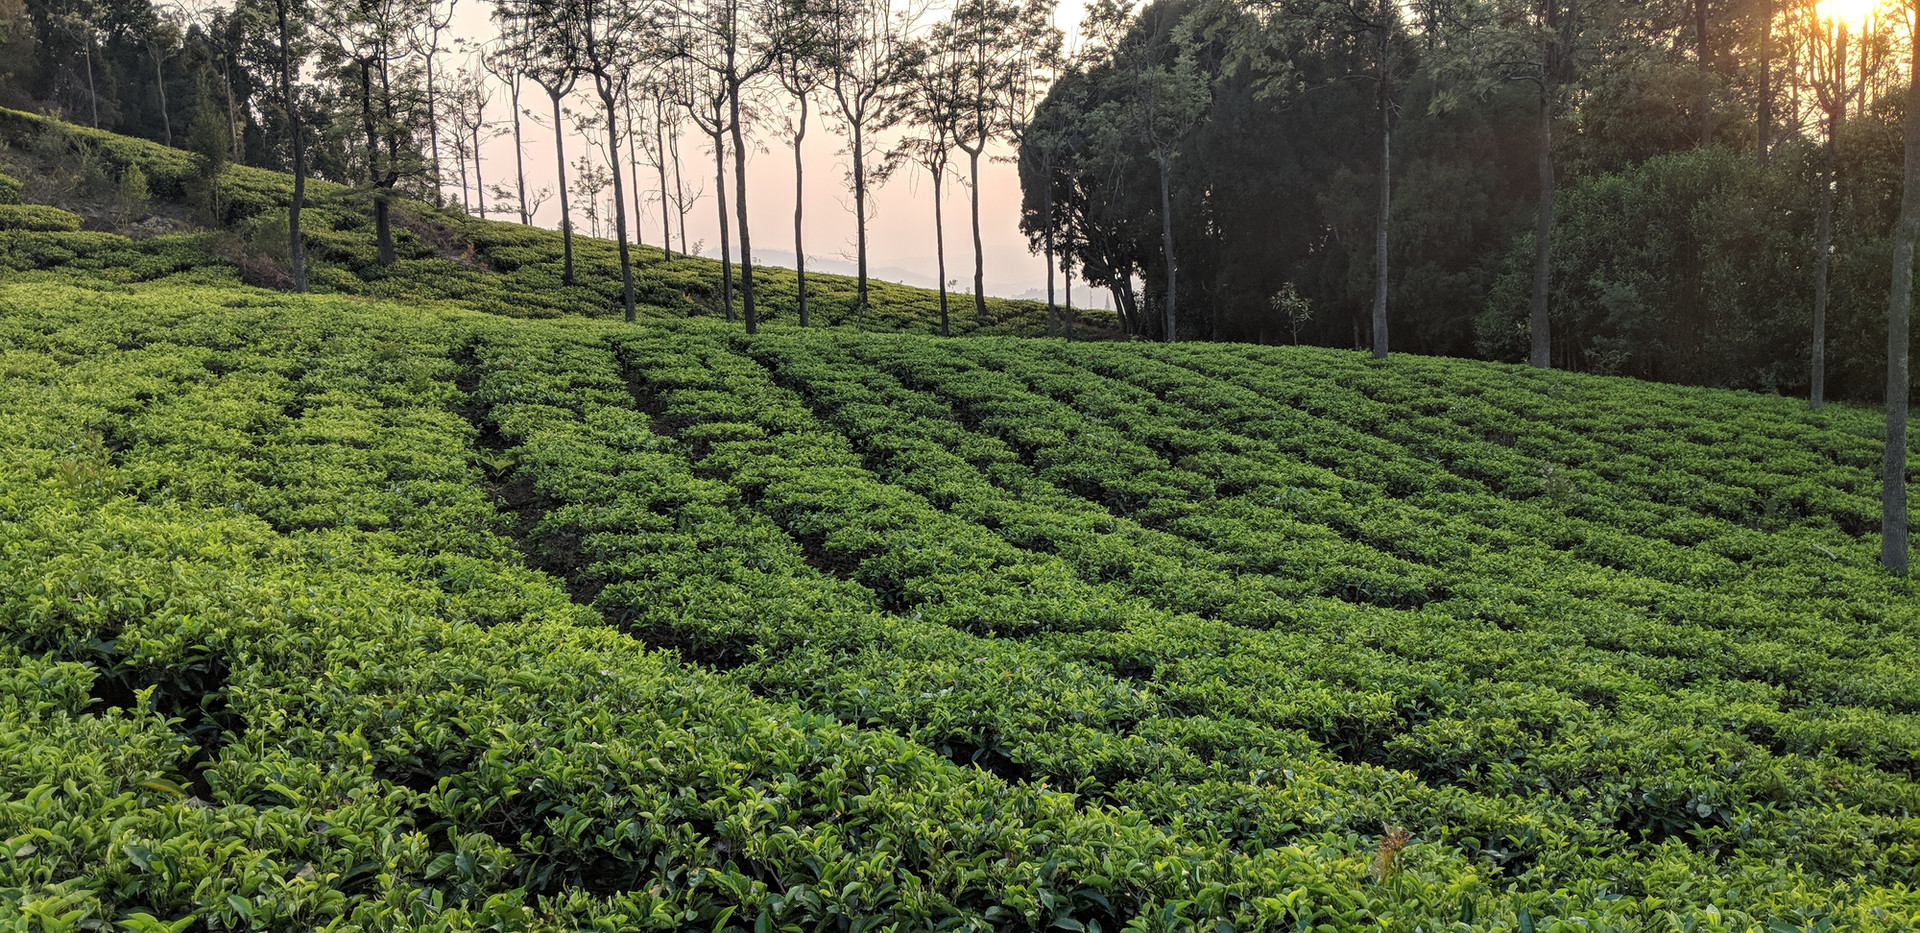 Tranquilitea tea estate in Coonoor